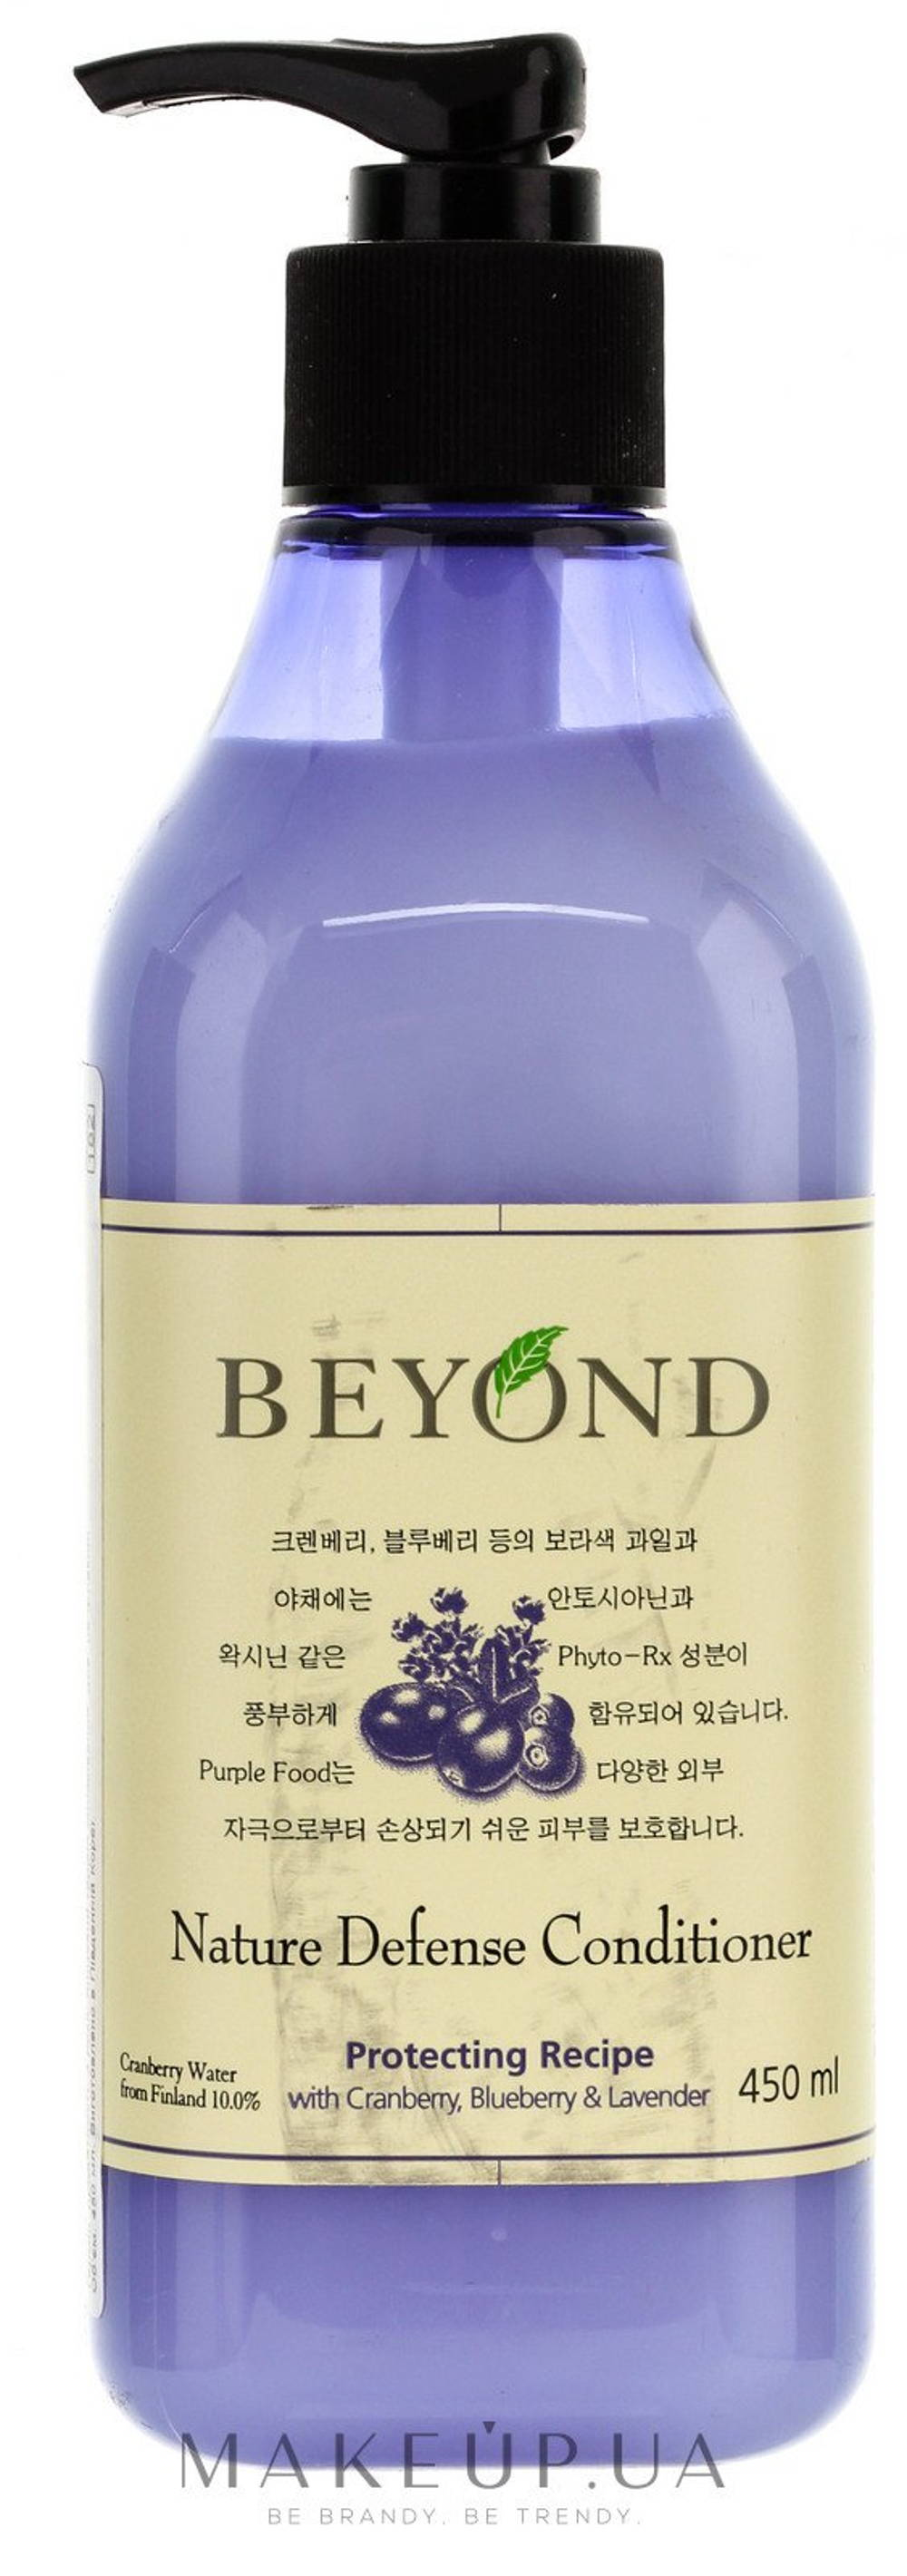 Beyond Nature Conditioner